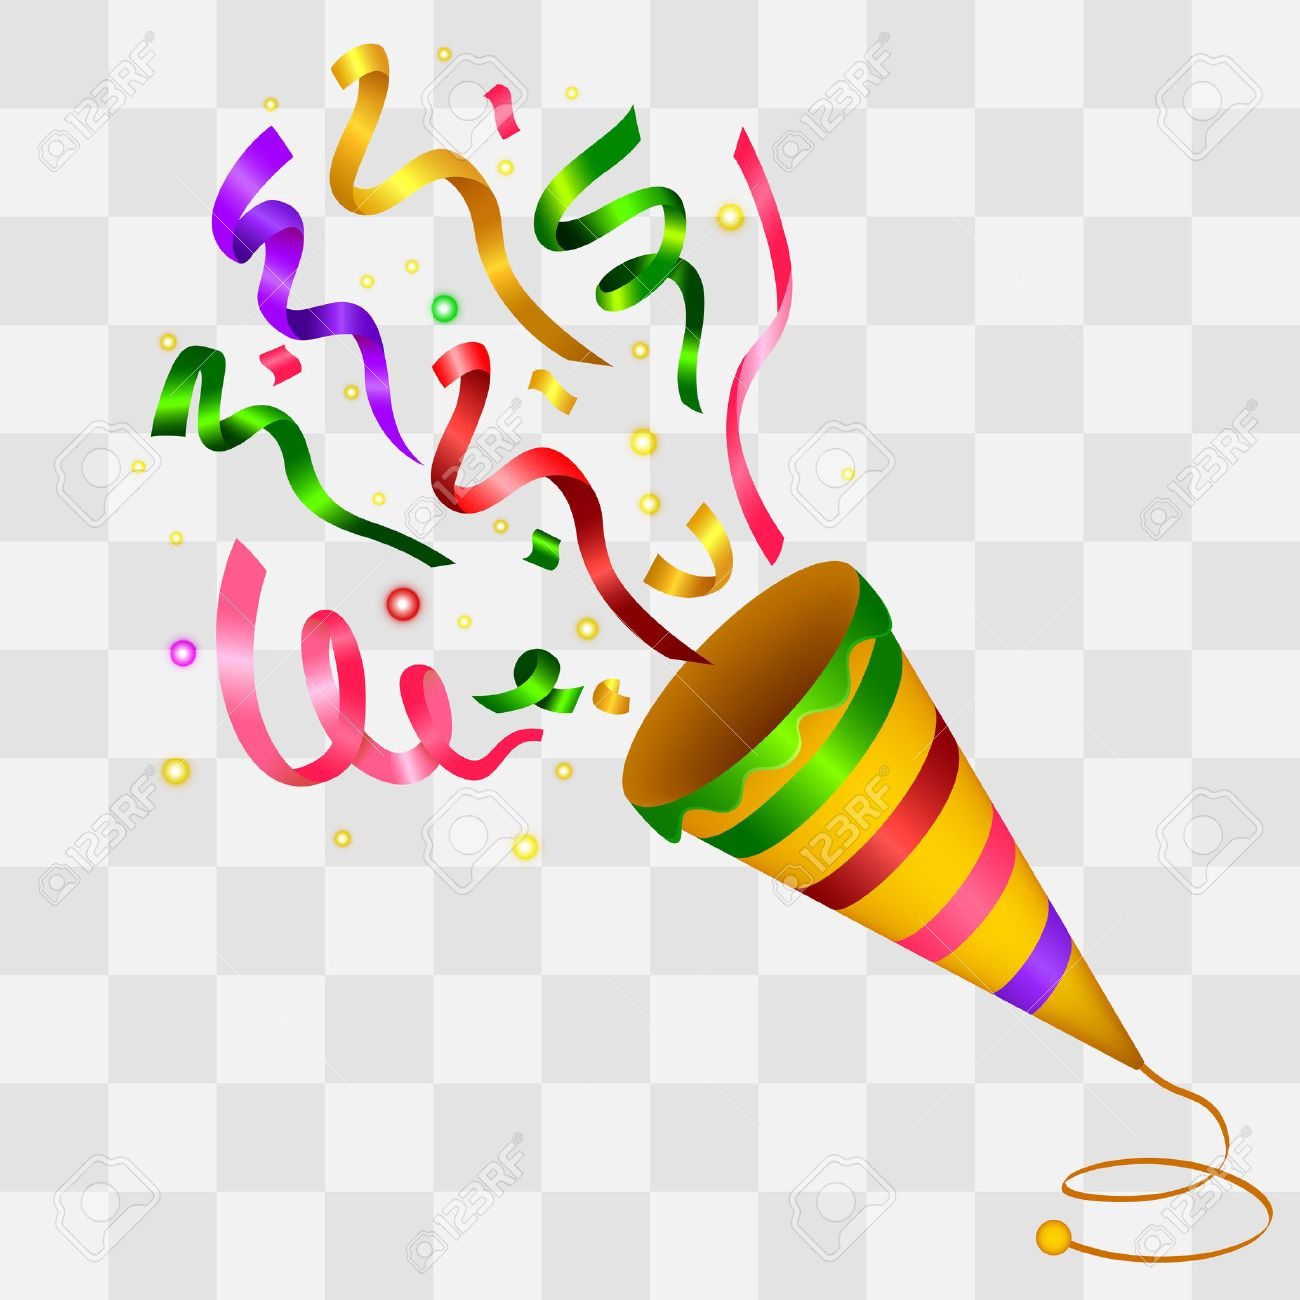 Exploding Colorful Confetti Popper on transparency background - 51102832